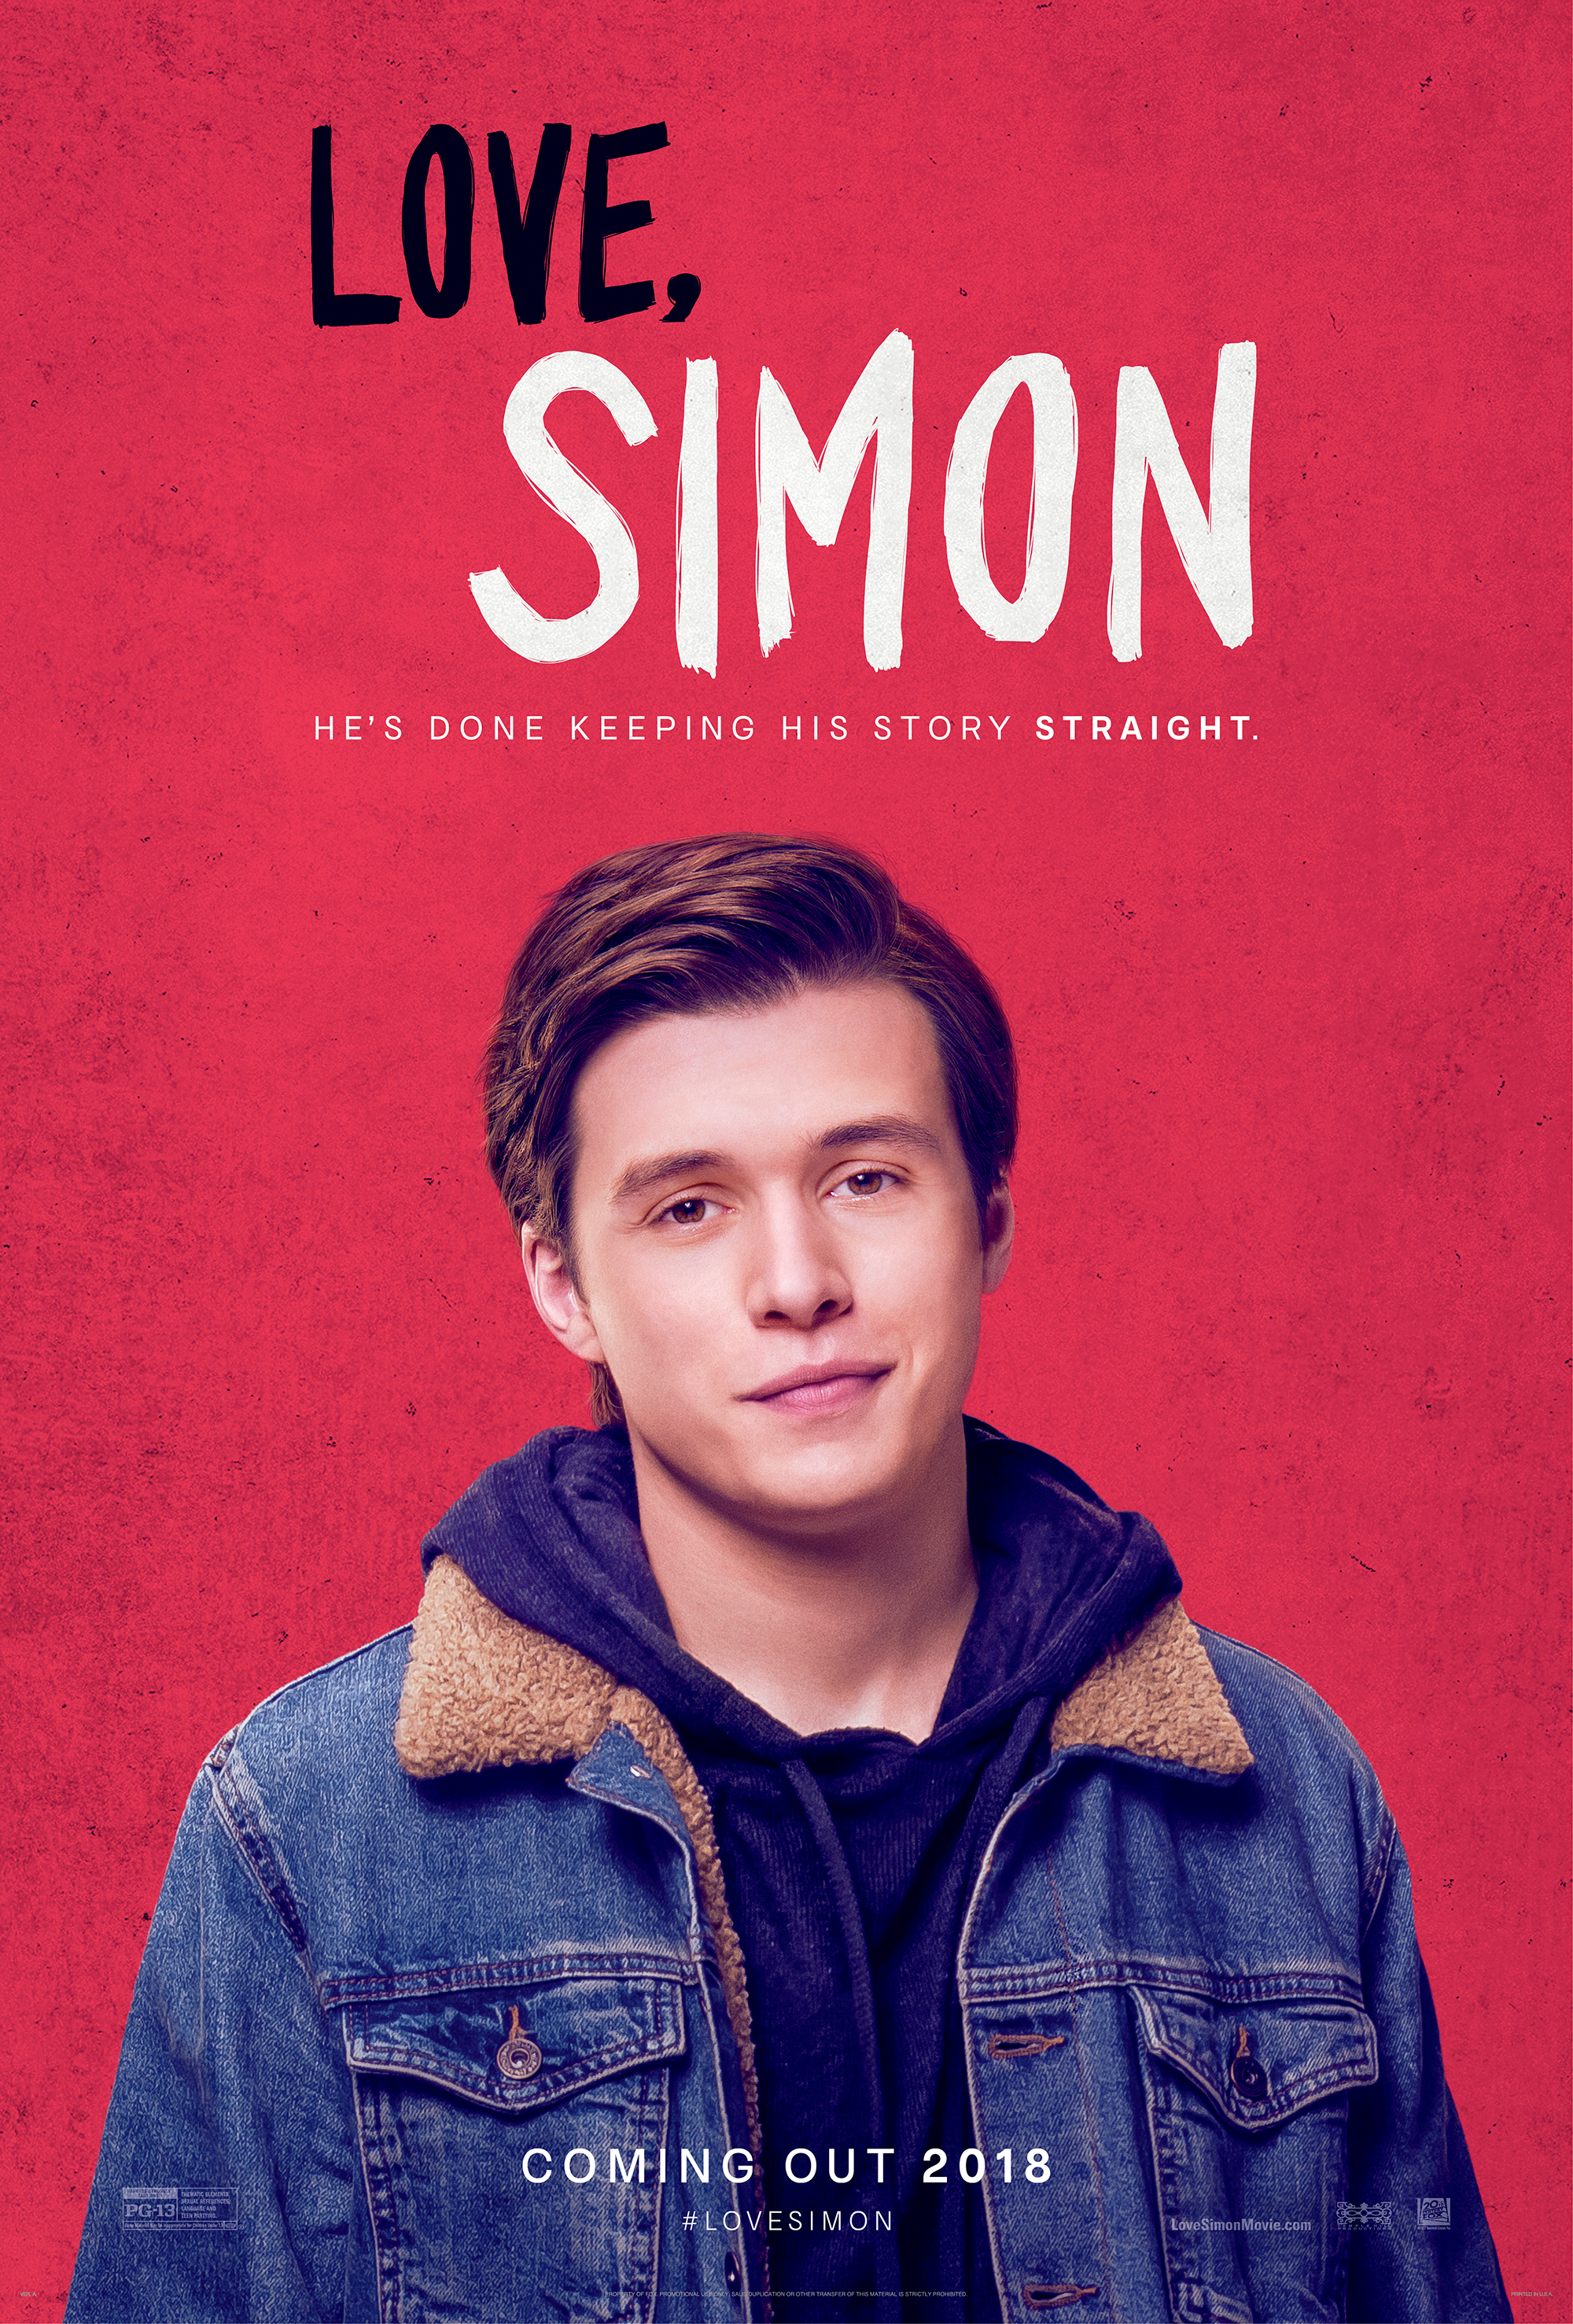 Love, Simon Trailer, Poster And Stills Released - Nothing ...